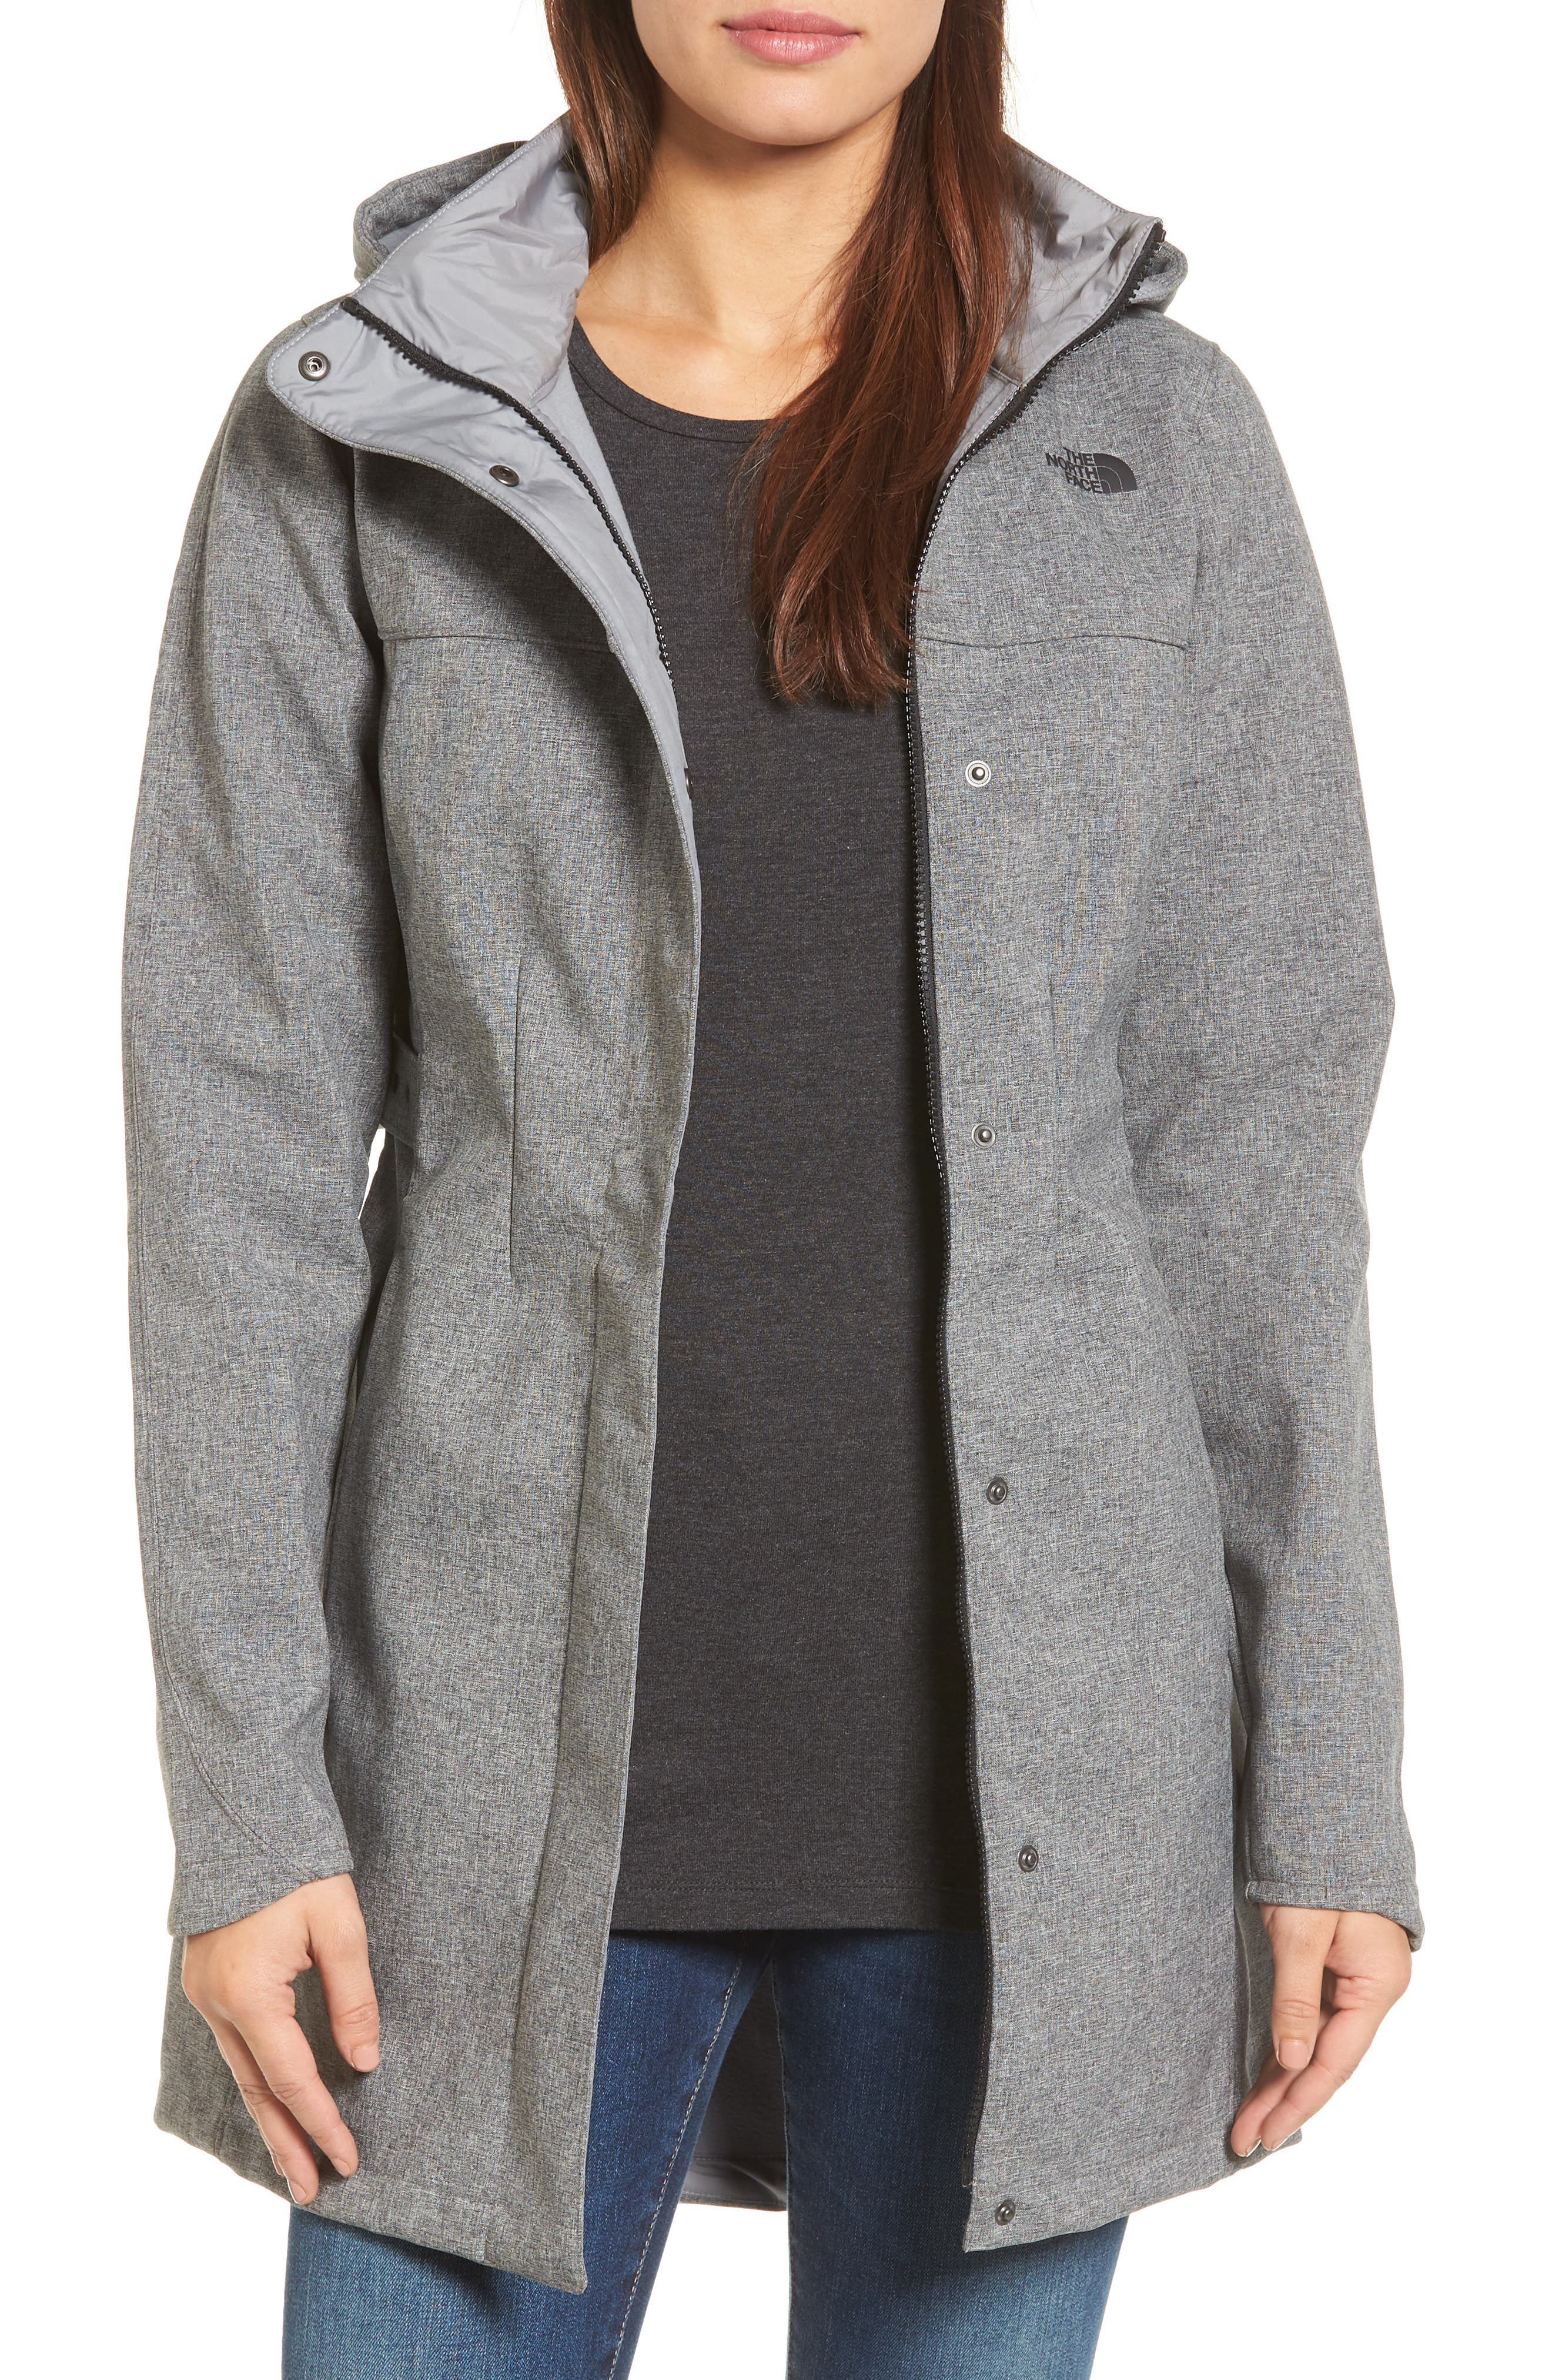 Alternate Image 1 Selected - The North Face 'Apex Bionic Grace' Jacket